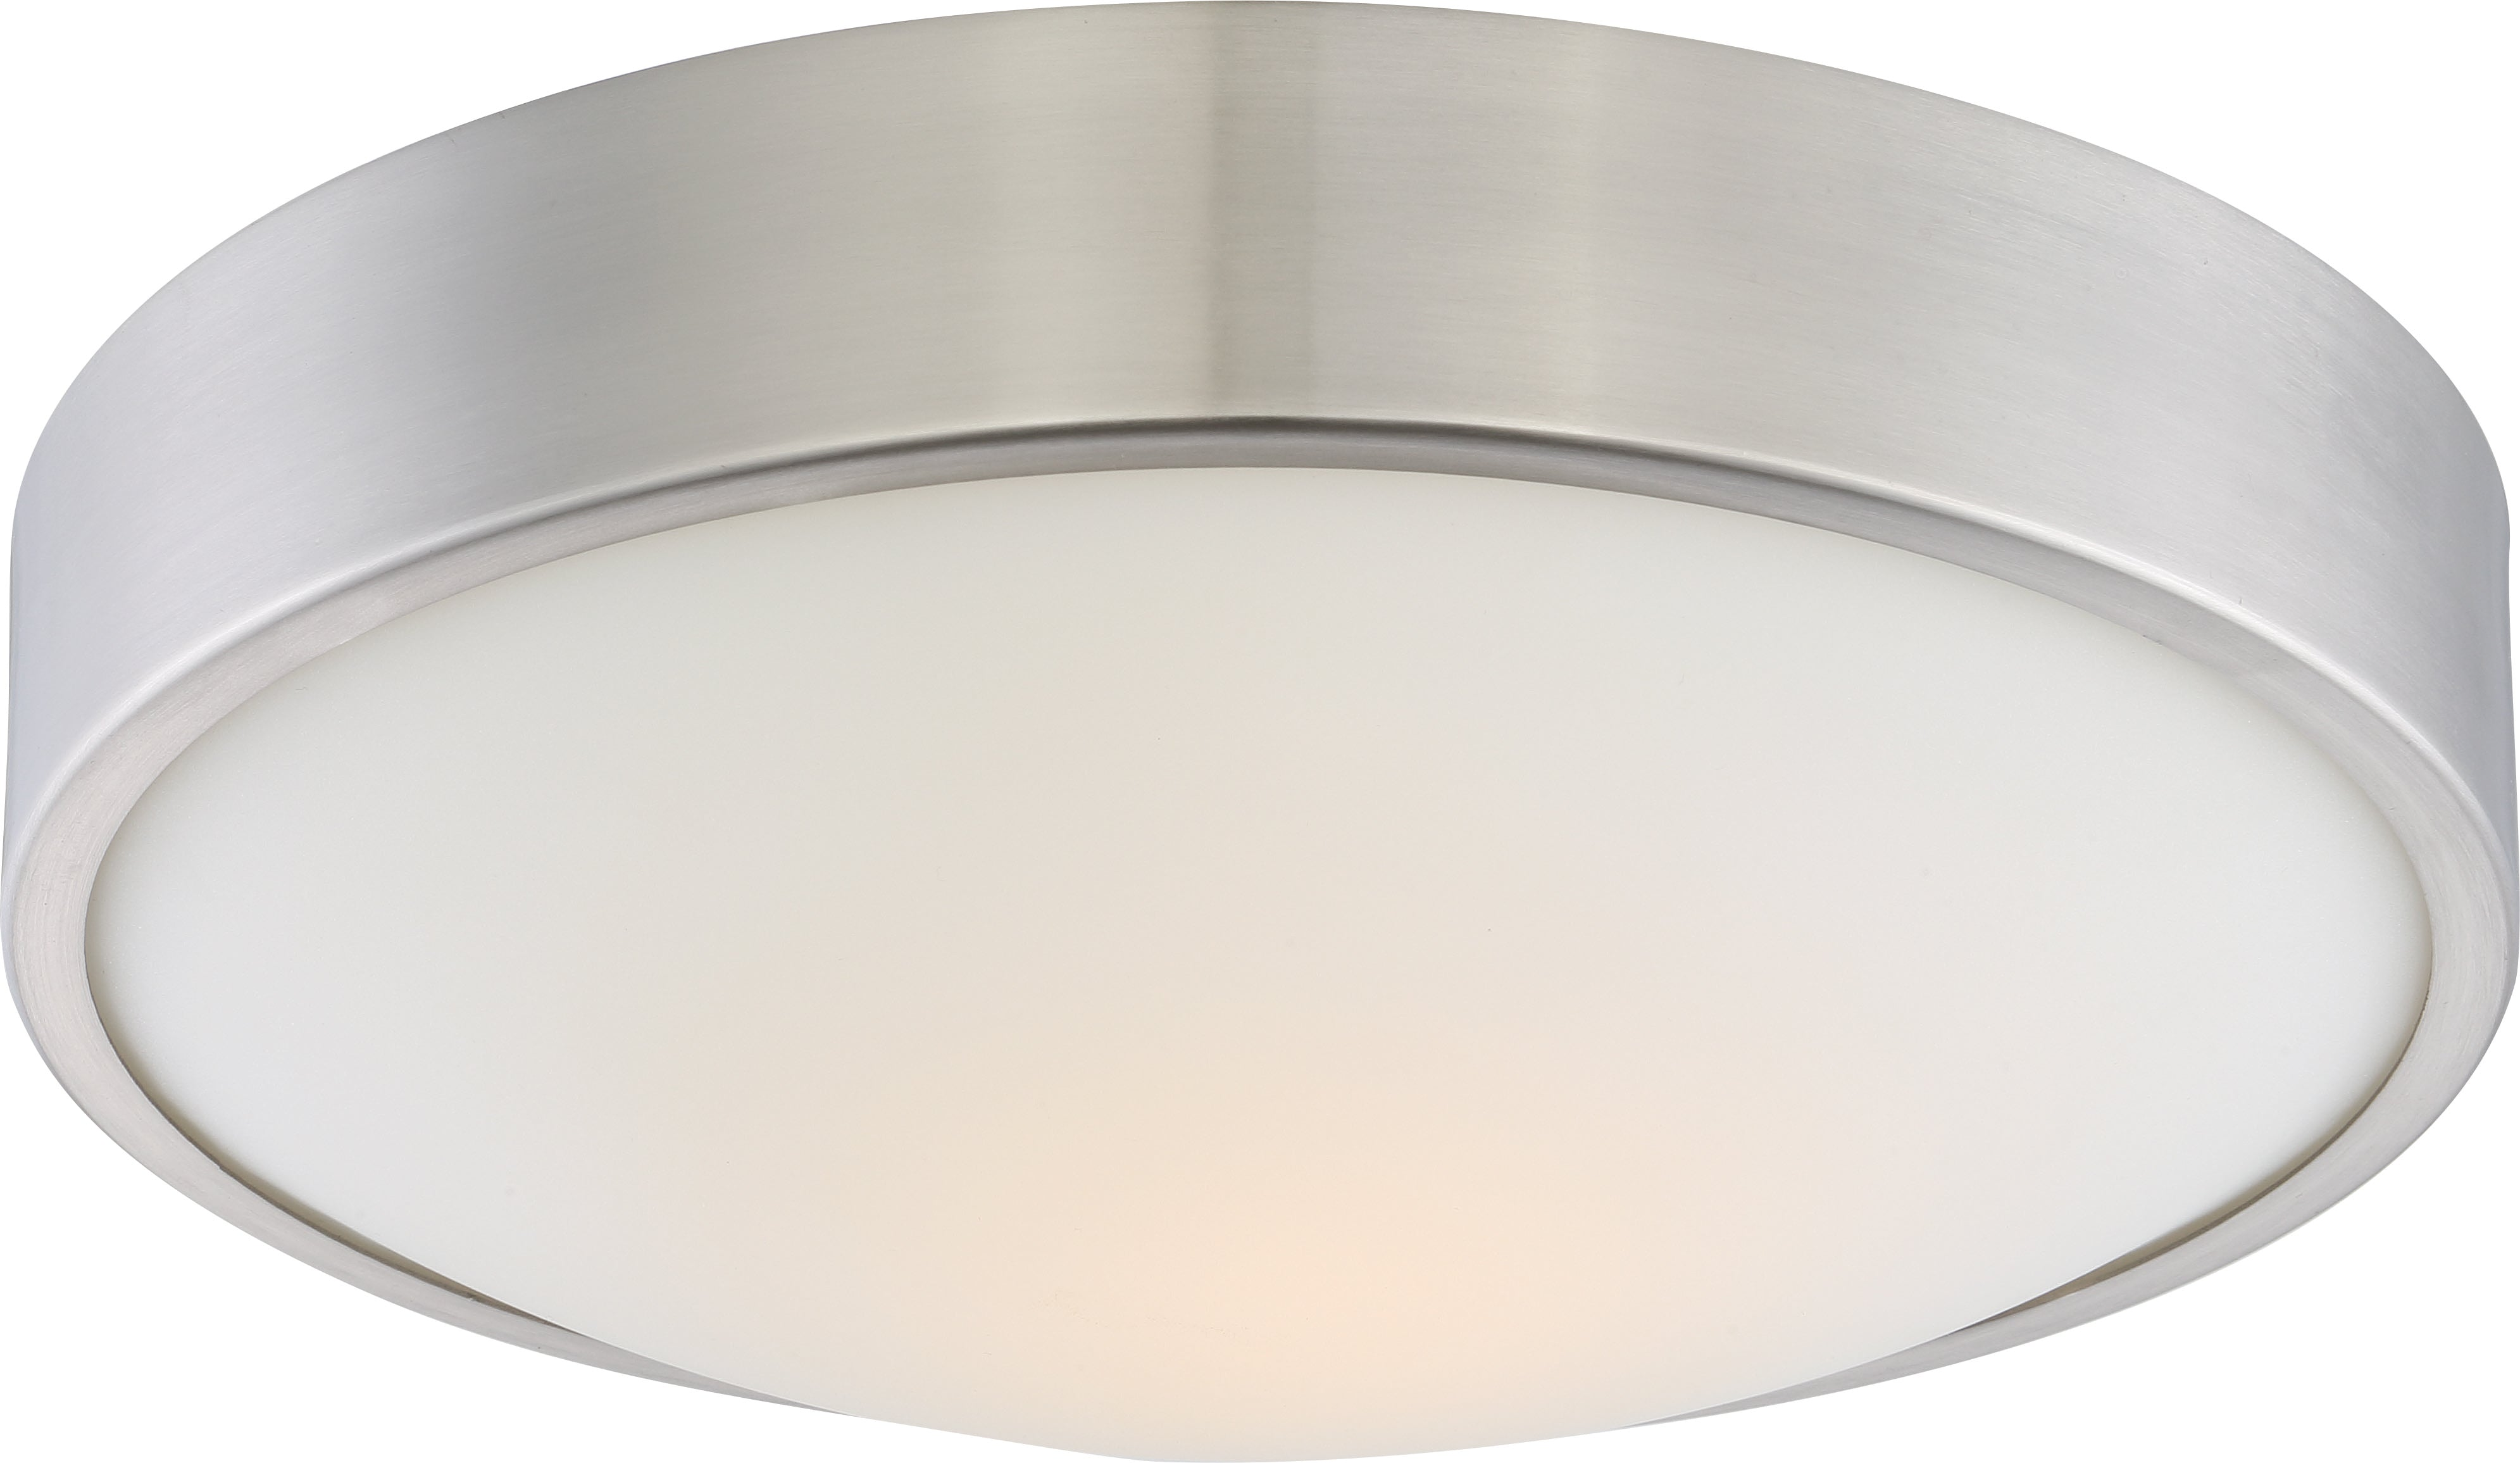 """Nuvo Perk 13"""" LED Flush Mount Fixture w/ White Glass in Brushed Nickel Finish"""